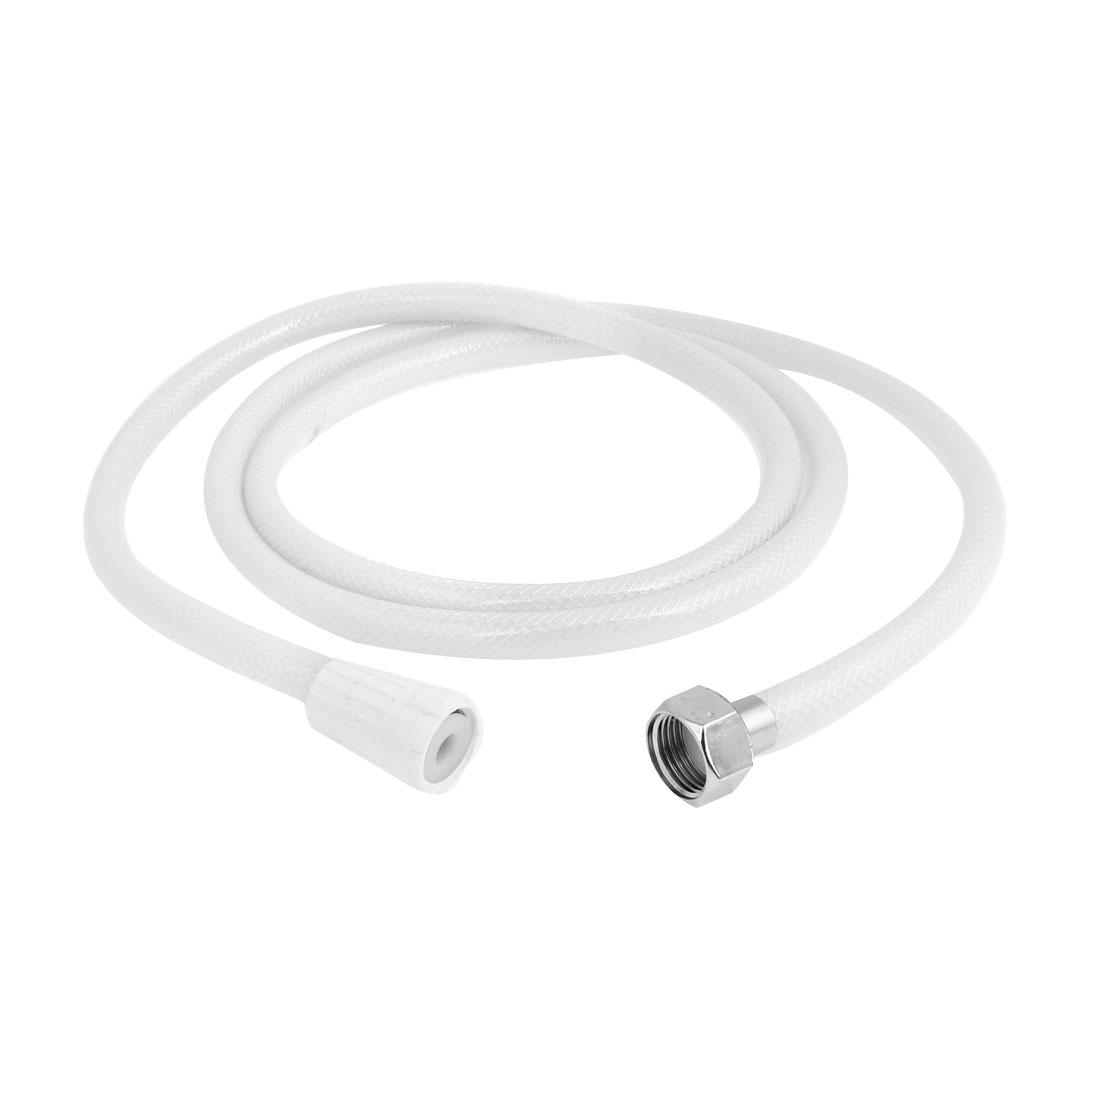 1.9Meter Long 19mm Thread Flexible Bathing Shower Hose Tube Pipe White